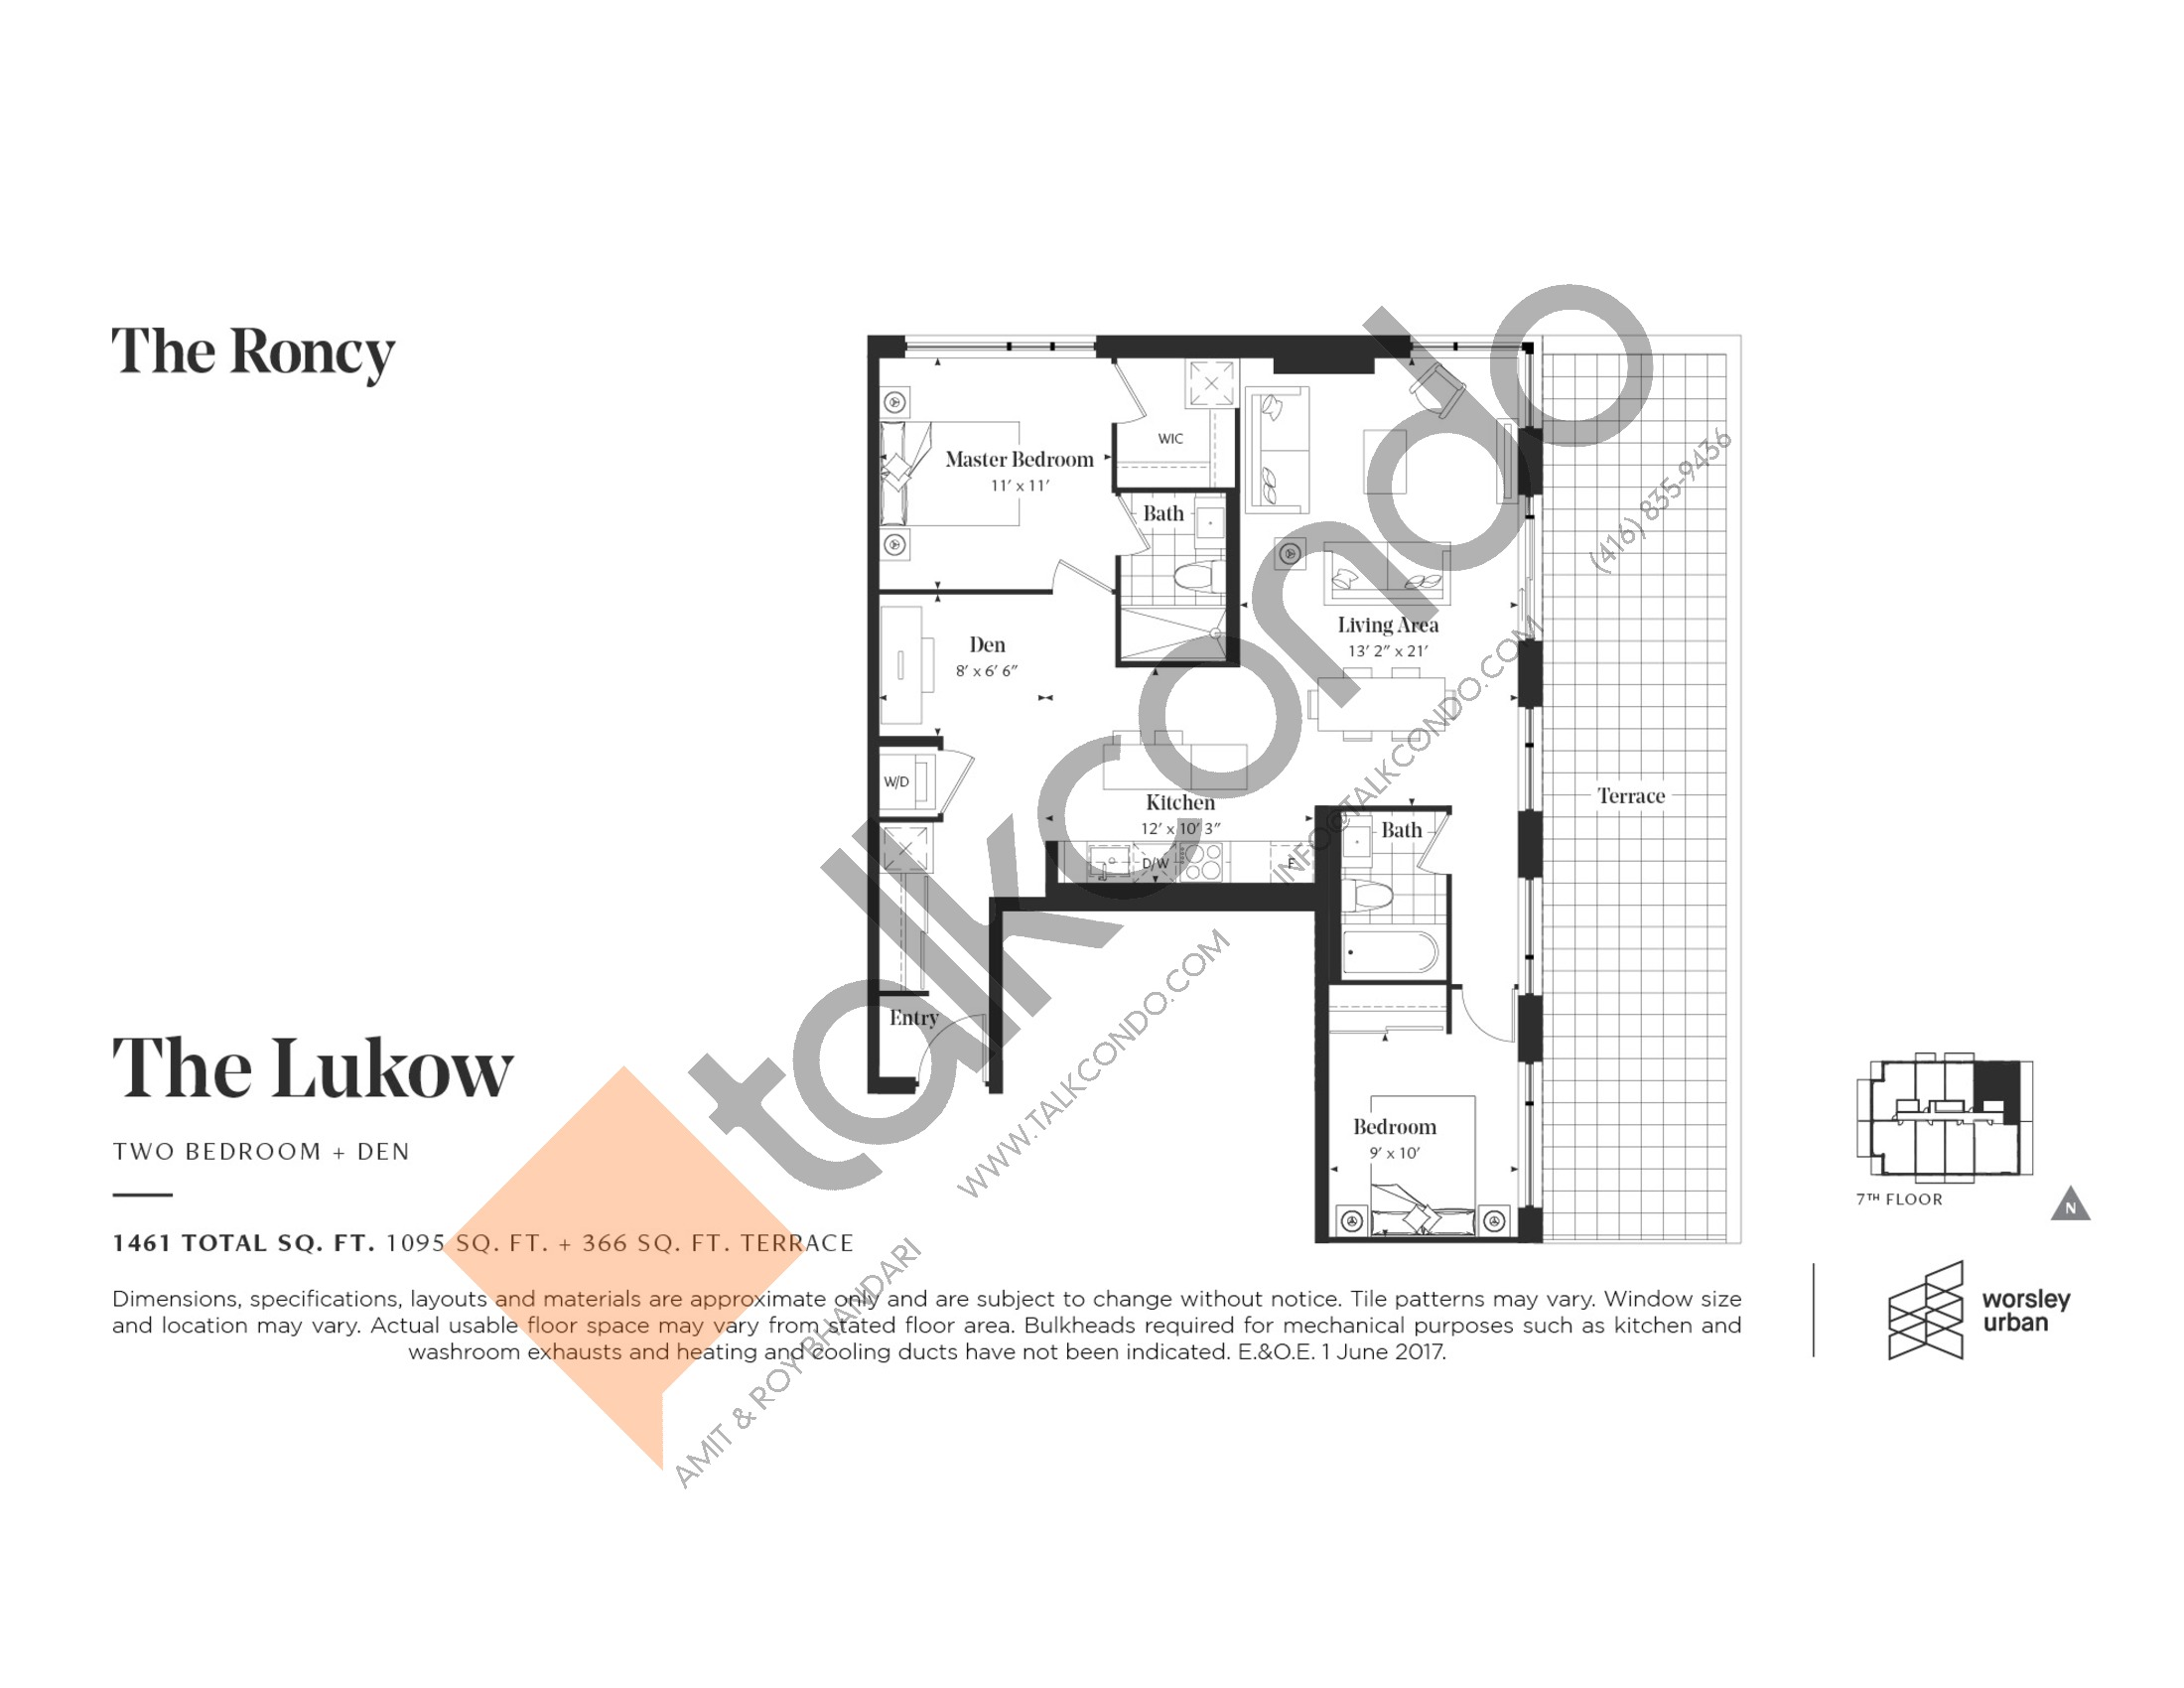 The Lukow Floor Plan at The Roncy Condos - 1095 sq.ft